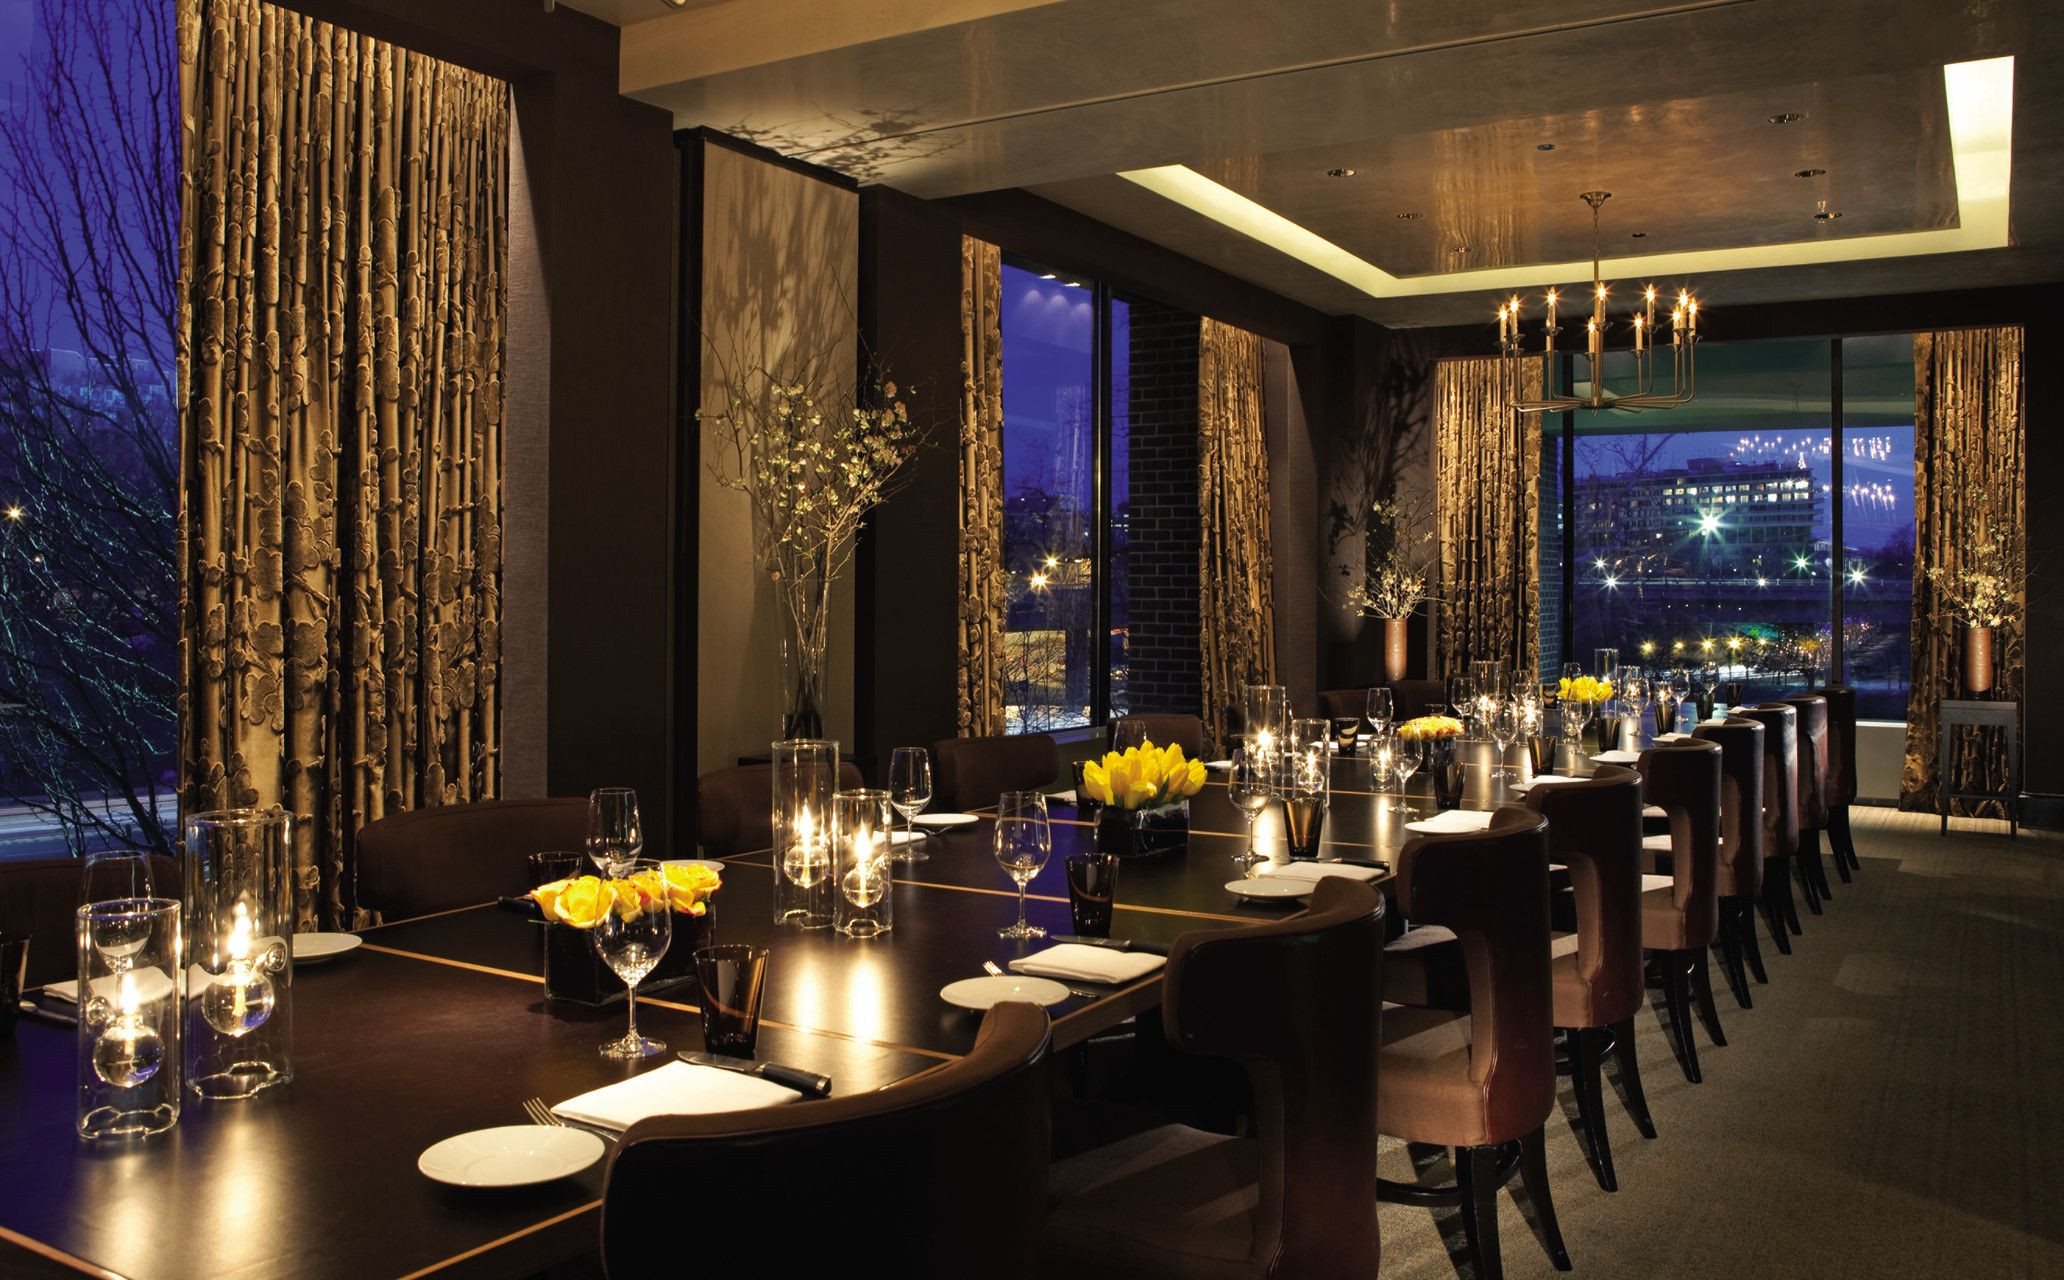 Dinner In D.C  Bourbon Steak private dining room at the Four Seasons